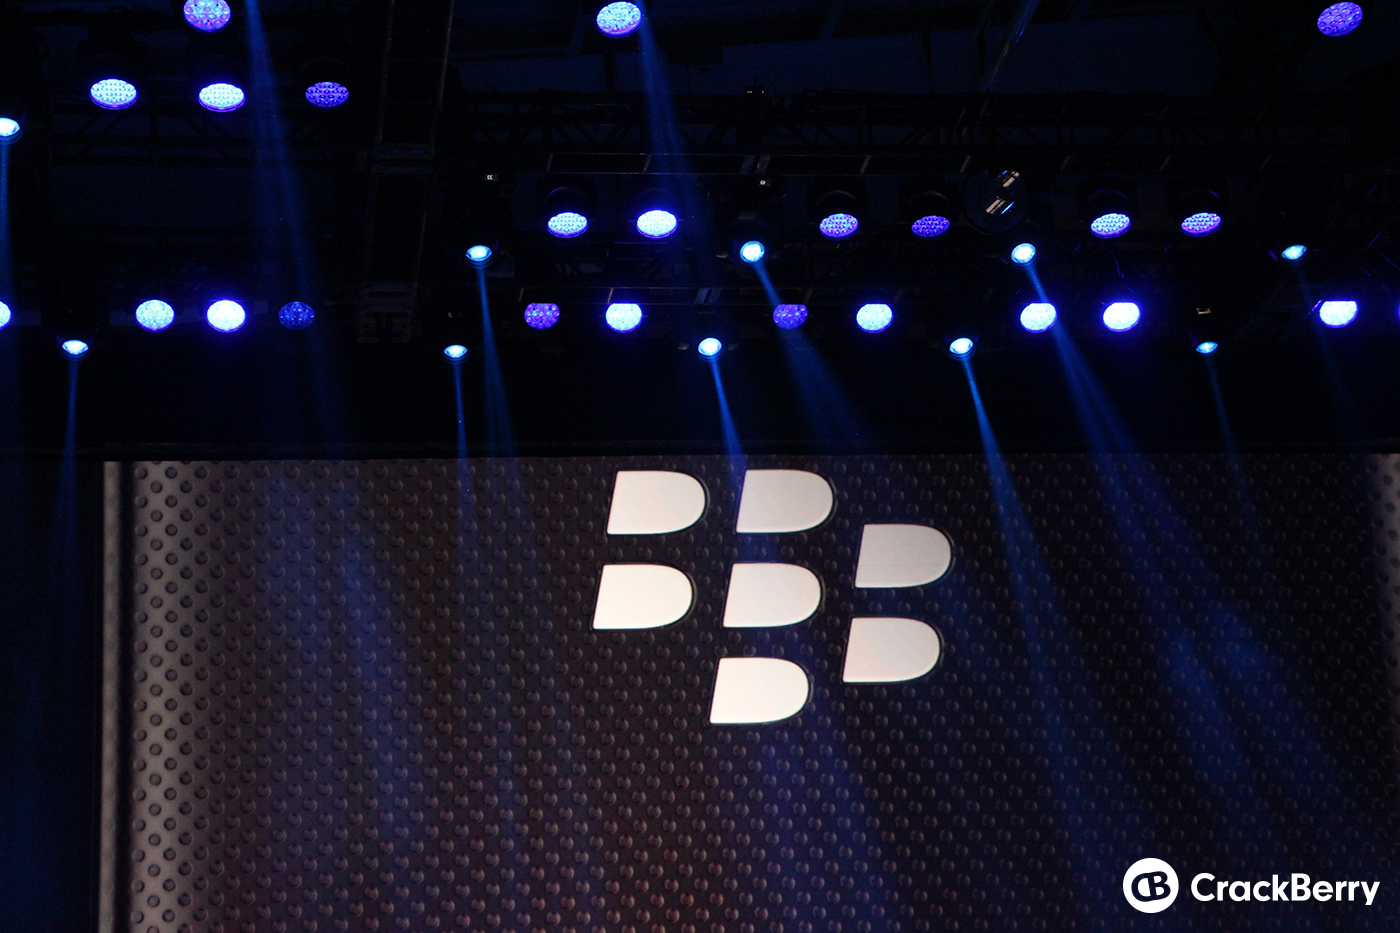 BlackBerry will operate in Pakistan